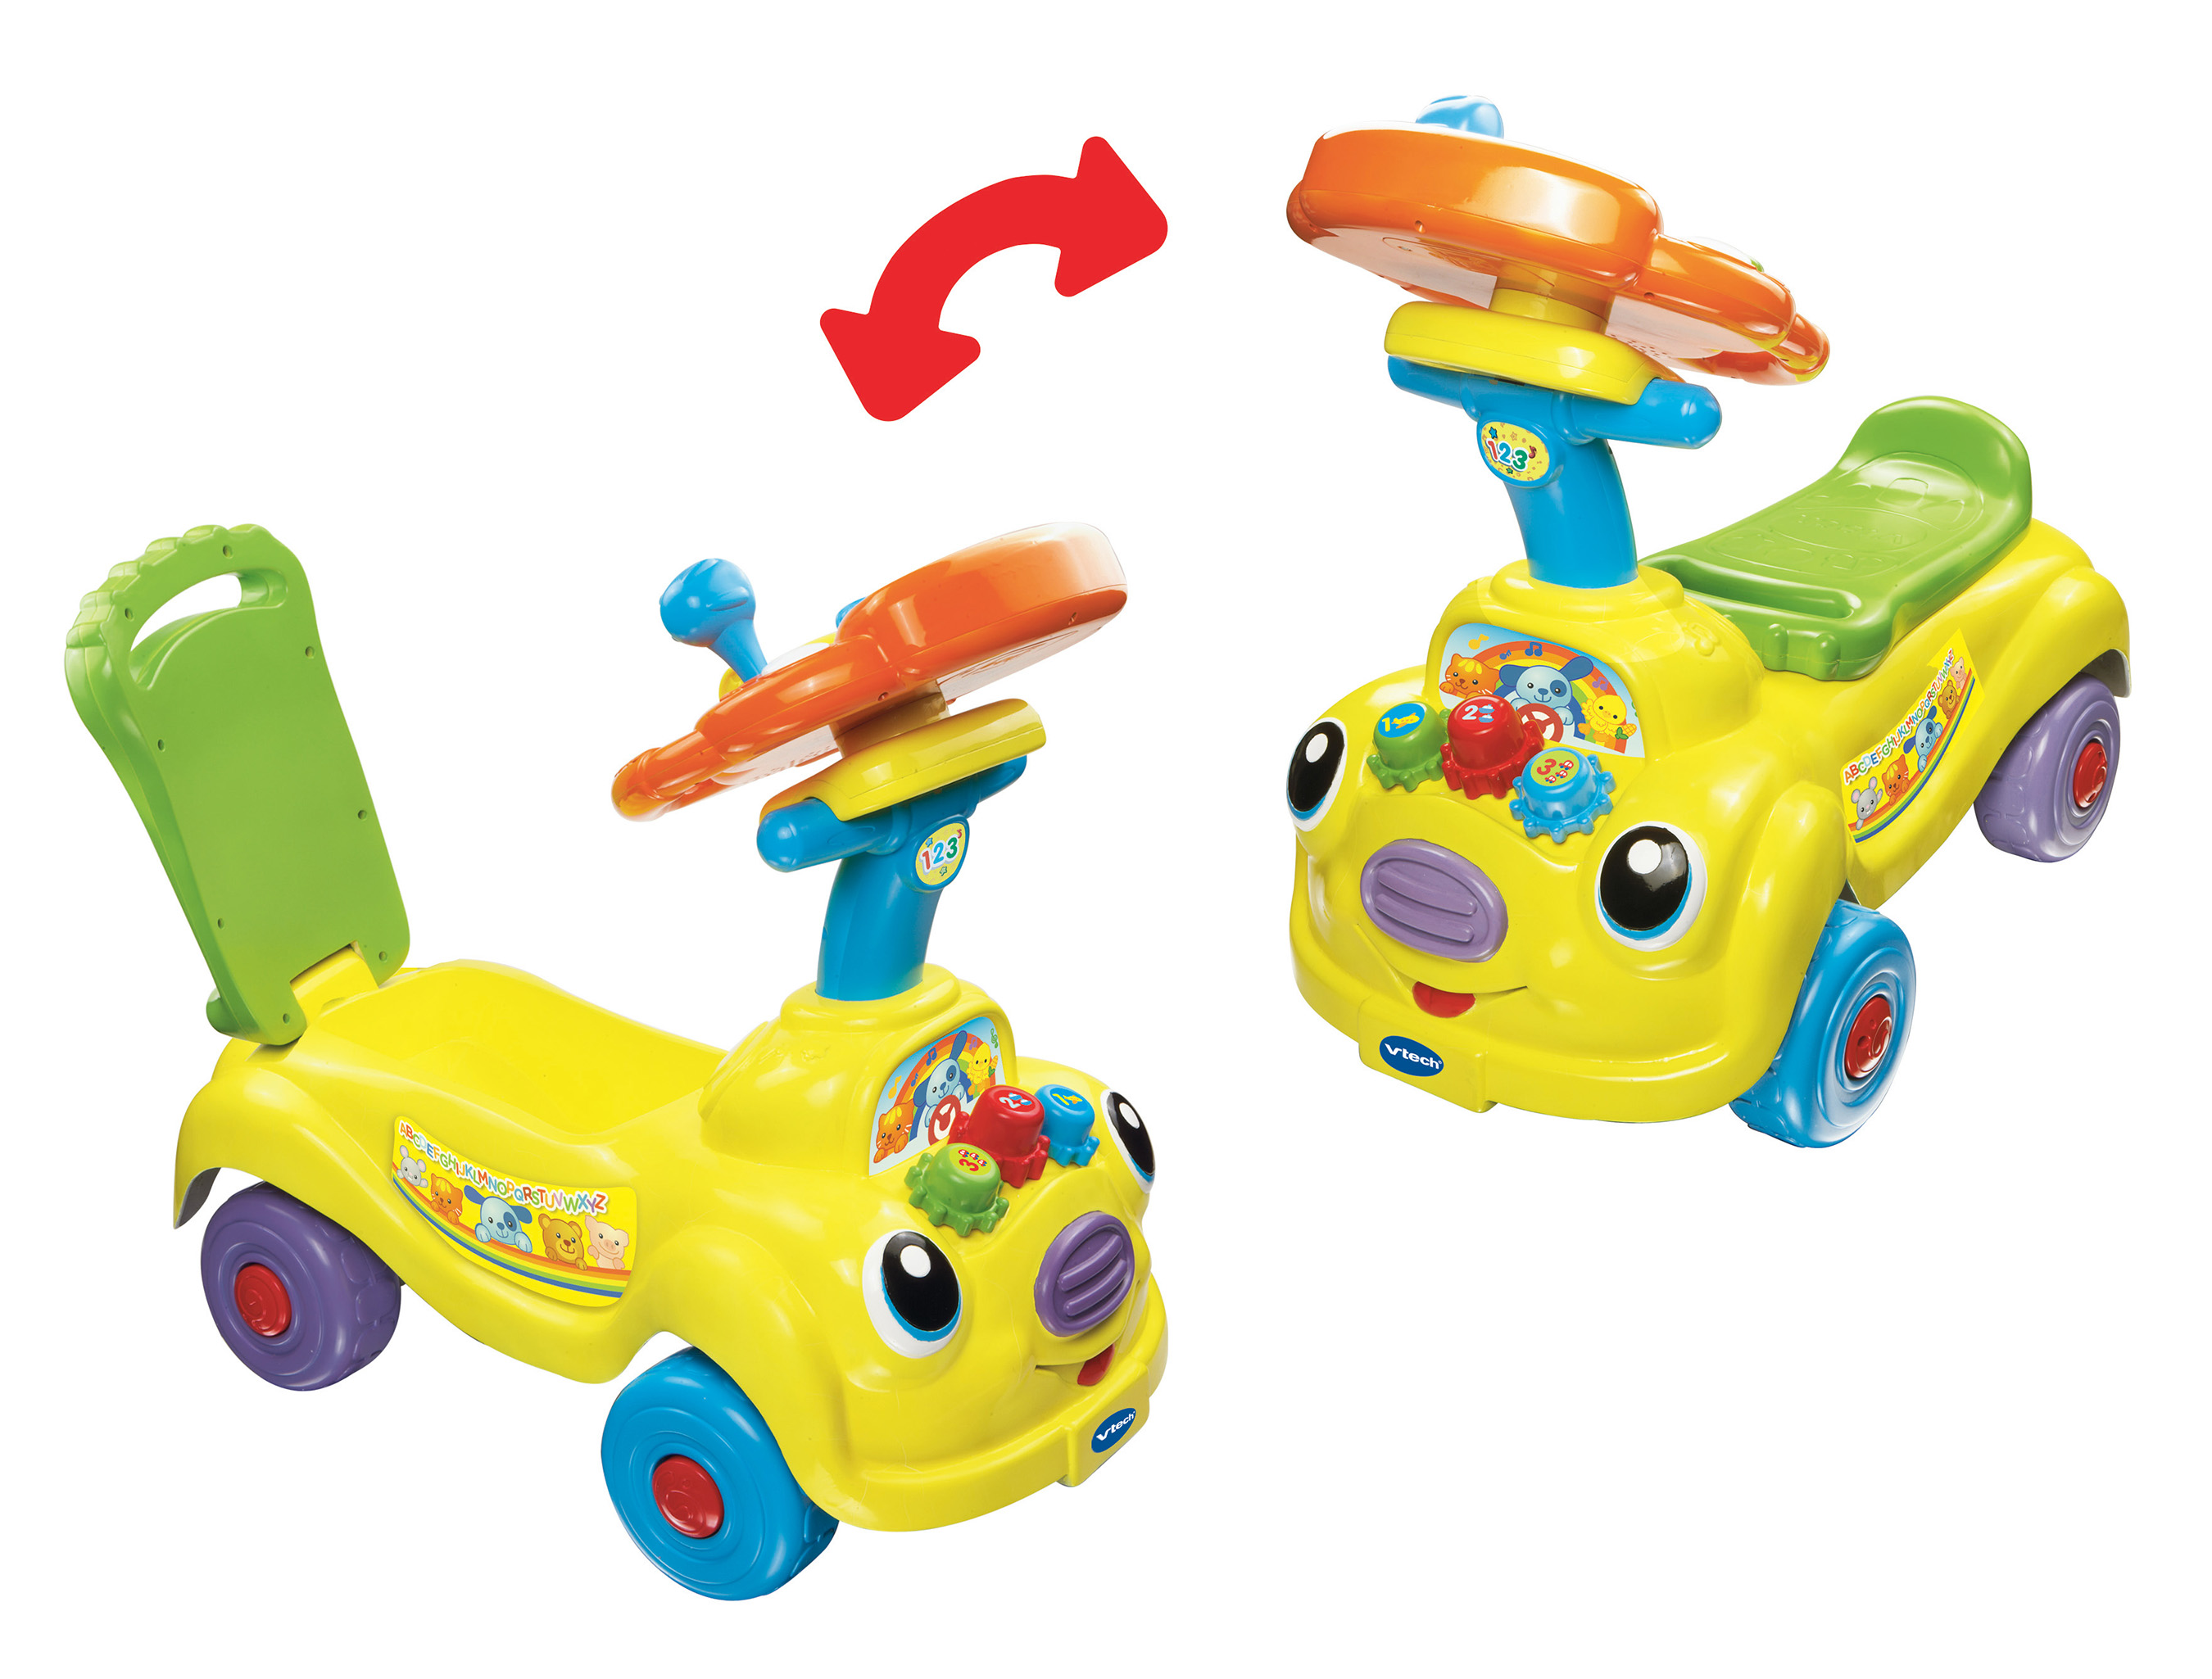 New Expertsupported Learning Products Join Vtech�'s Awardwinning Infant  And Preschool Line